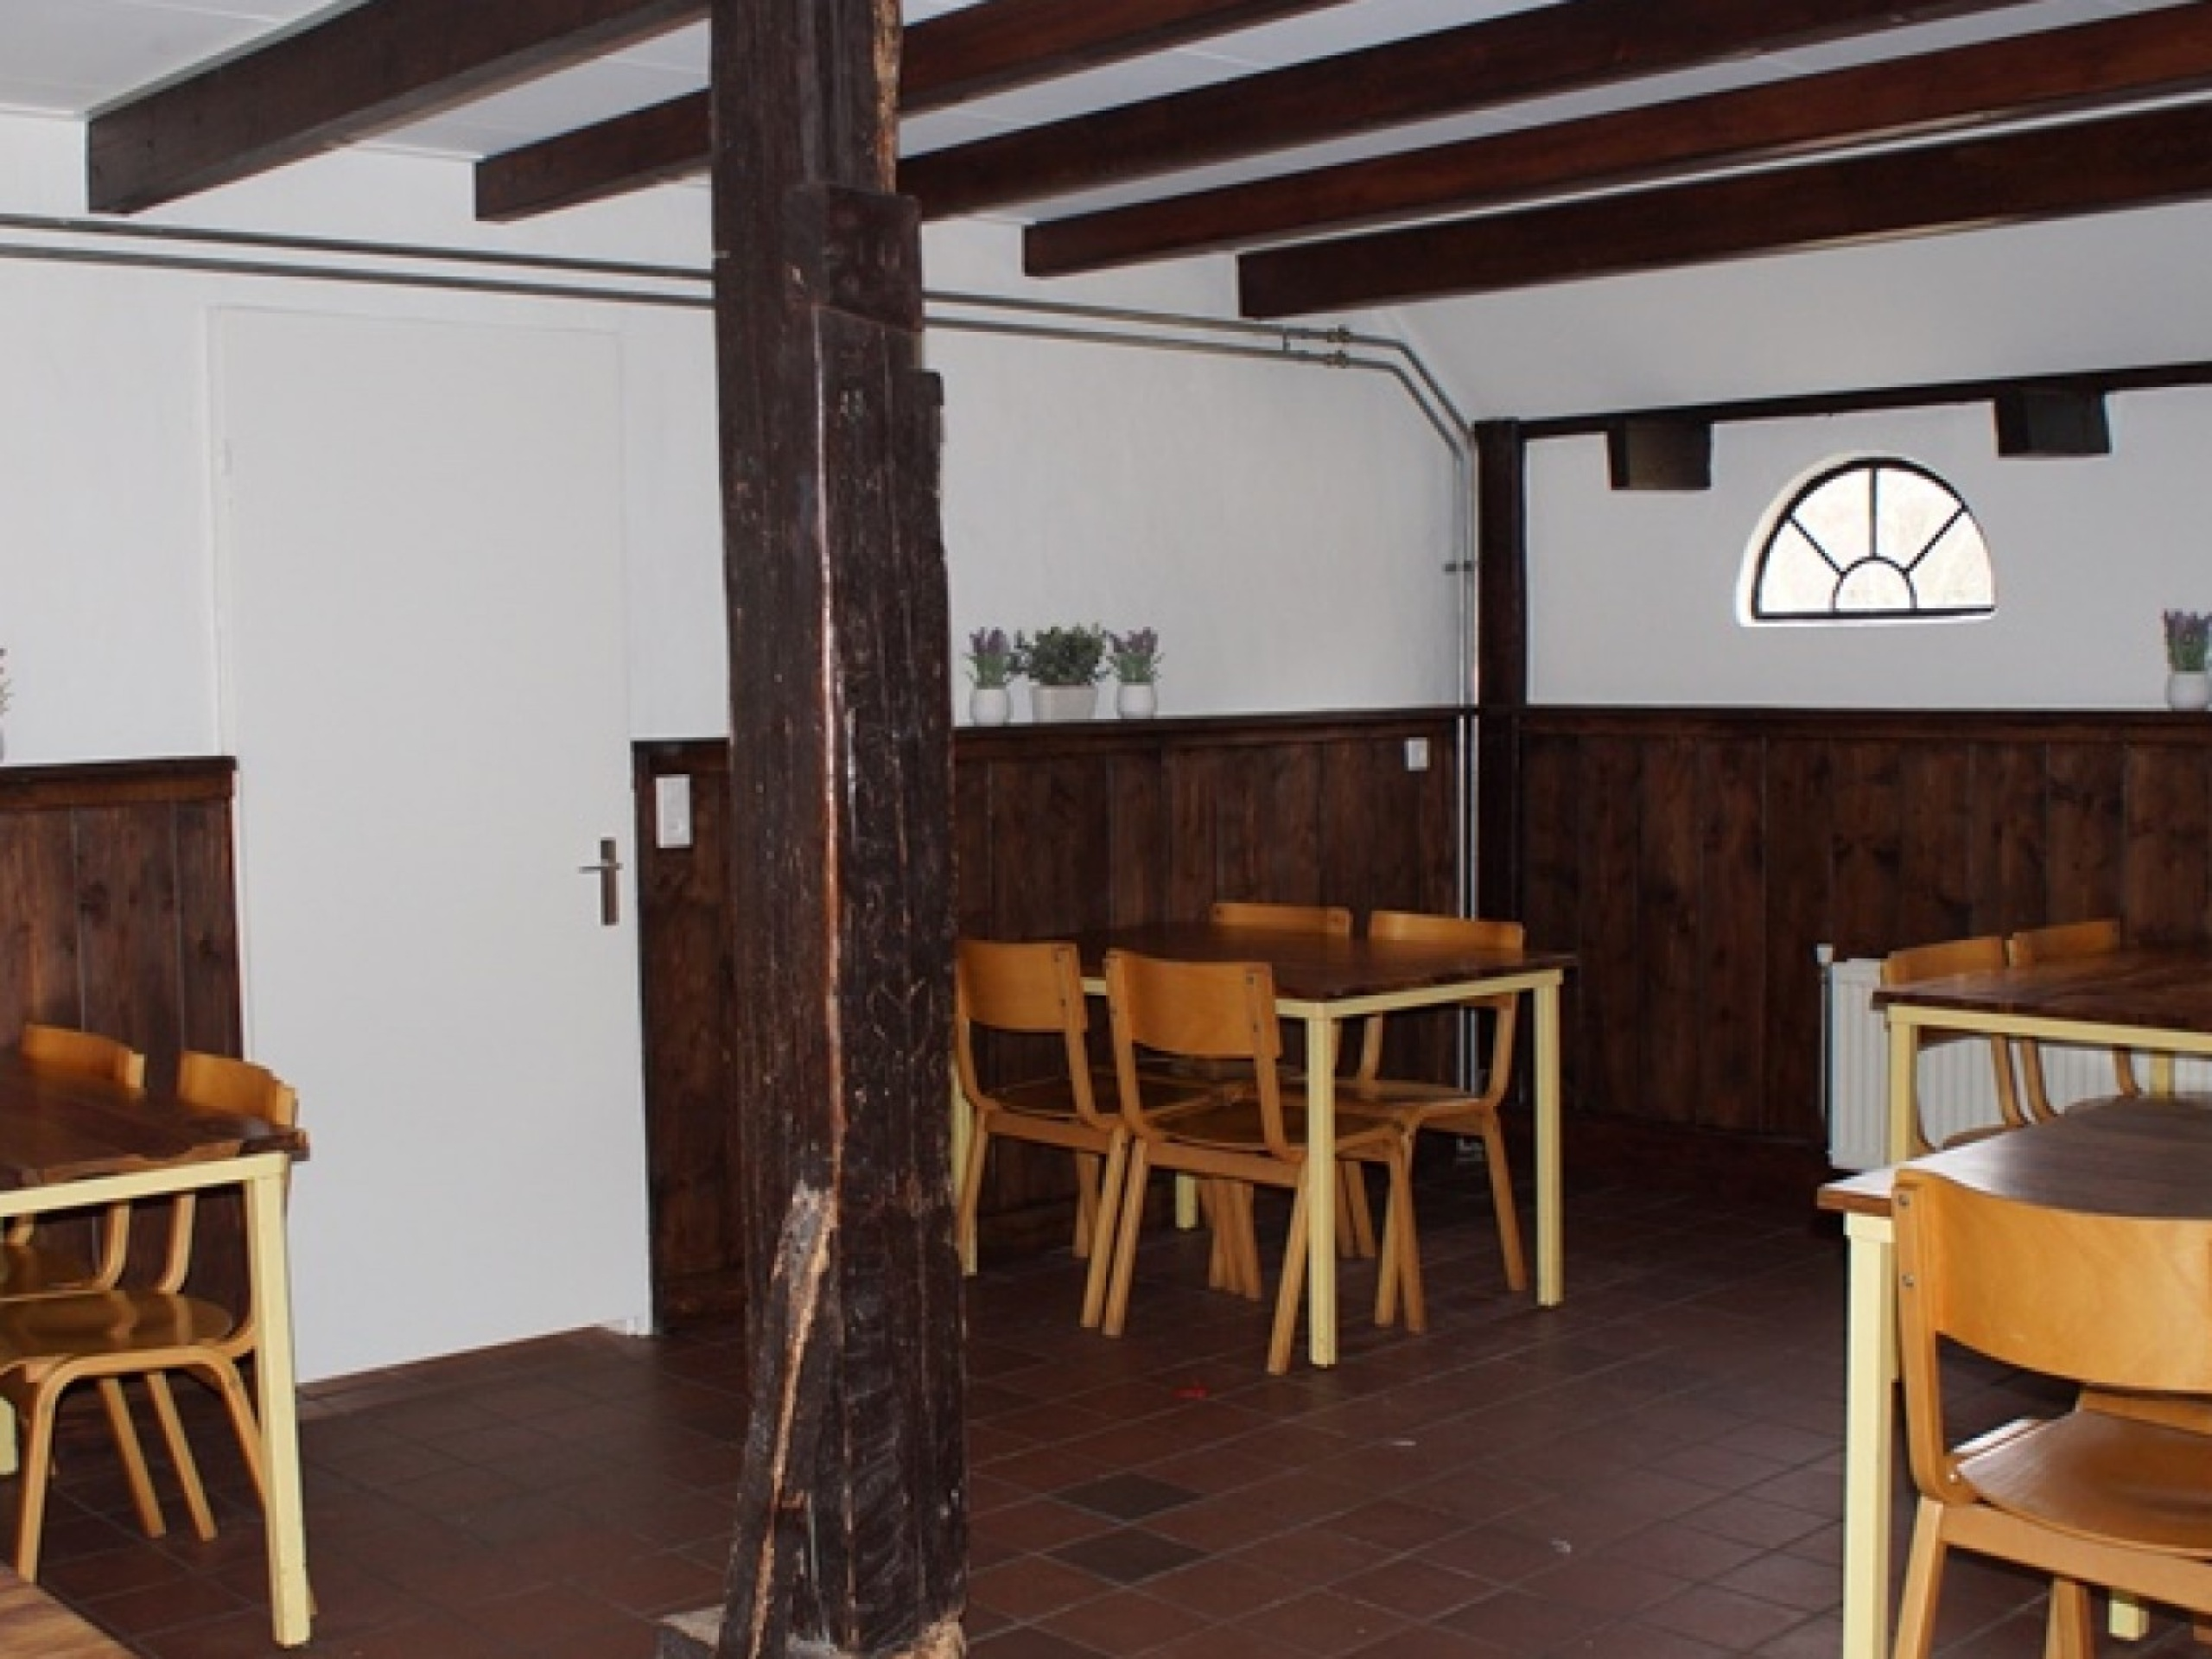 Enjoy the fullest in ideally located group accommodation nearby the beach in De Koog